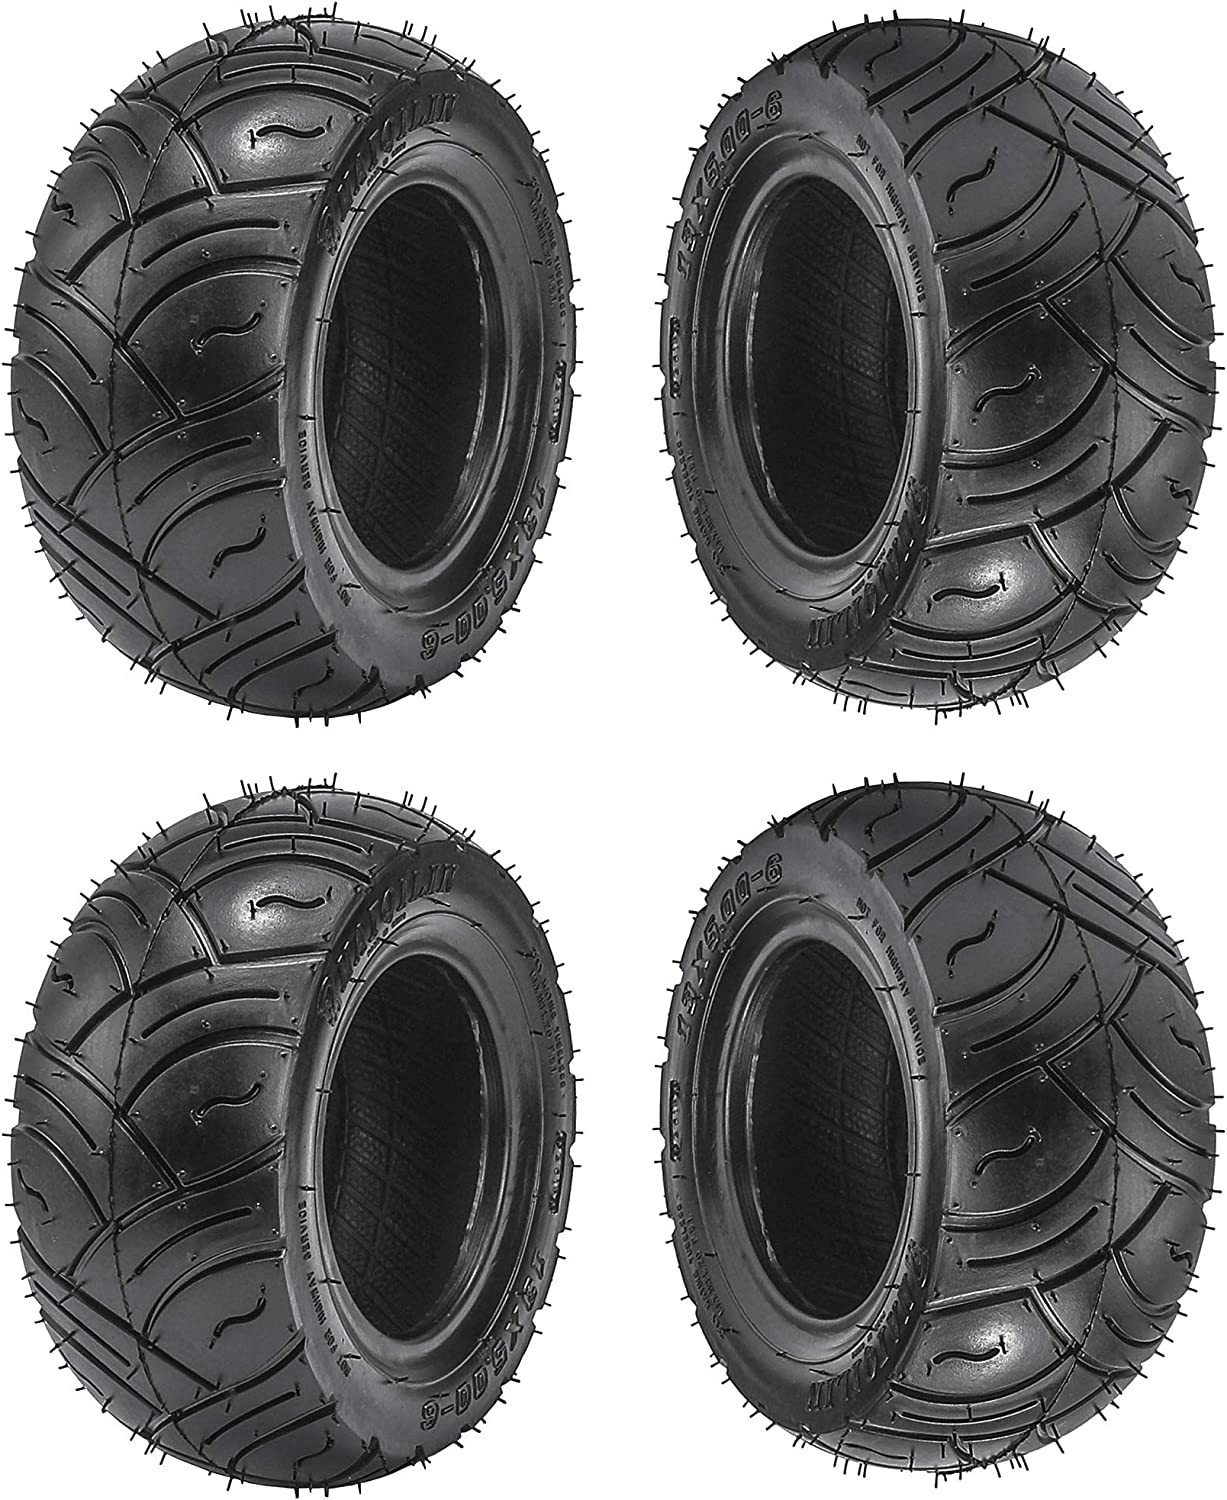 Fuerduo 4PCS 13x5-6 Recommendation Tubeless Tire for Mow Kart Recommendation Buggy Quad Go ATV